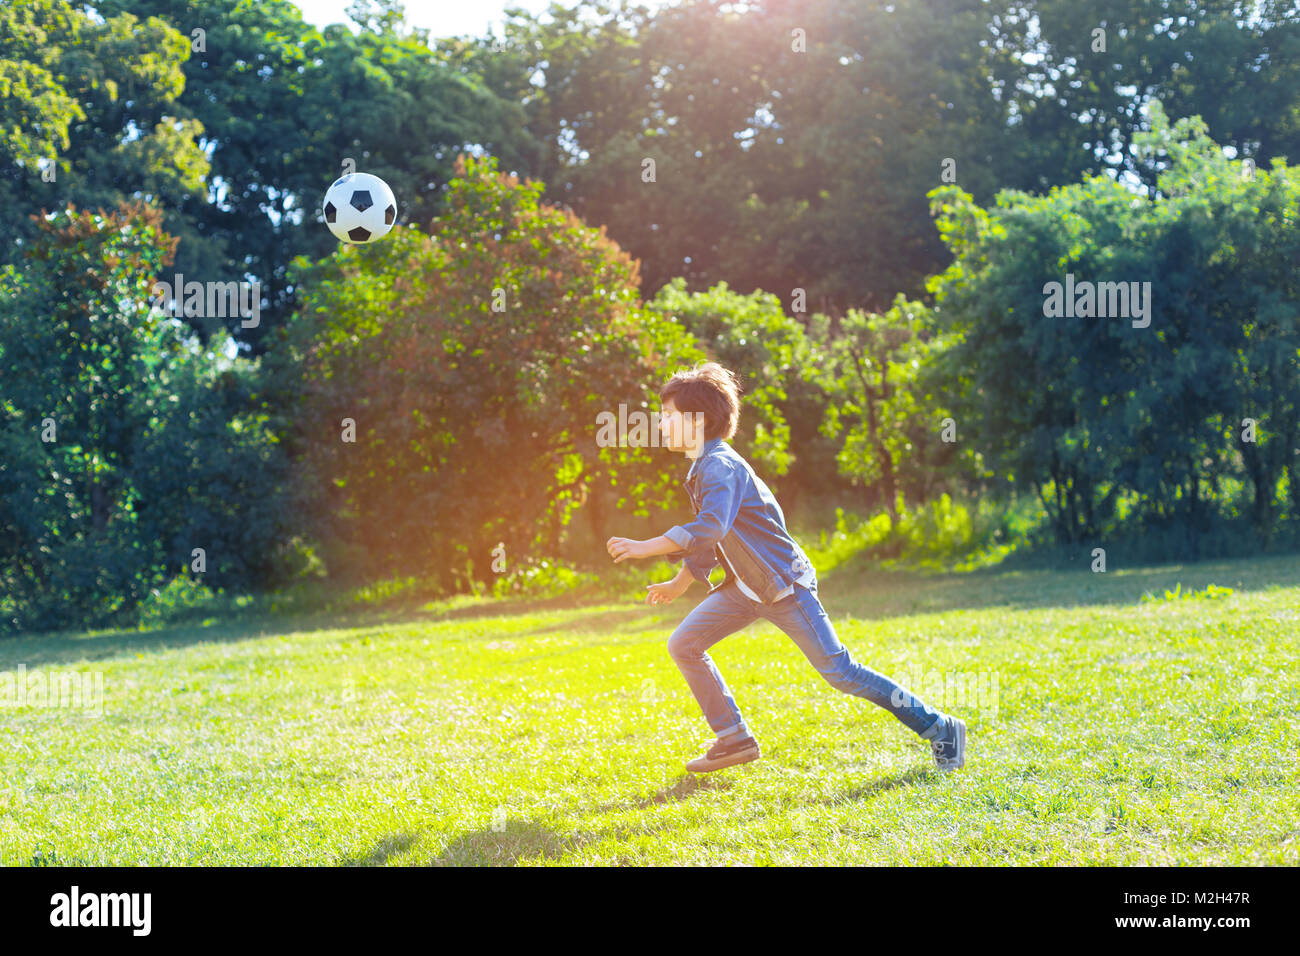 Active teen boy playing football outdoors - Stock Image